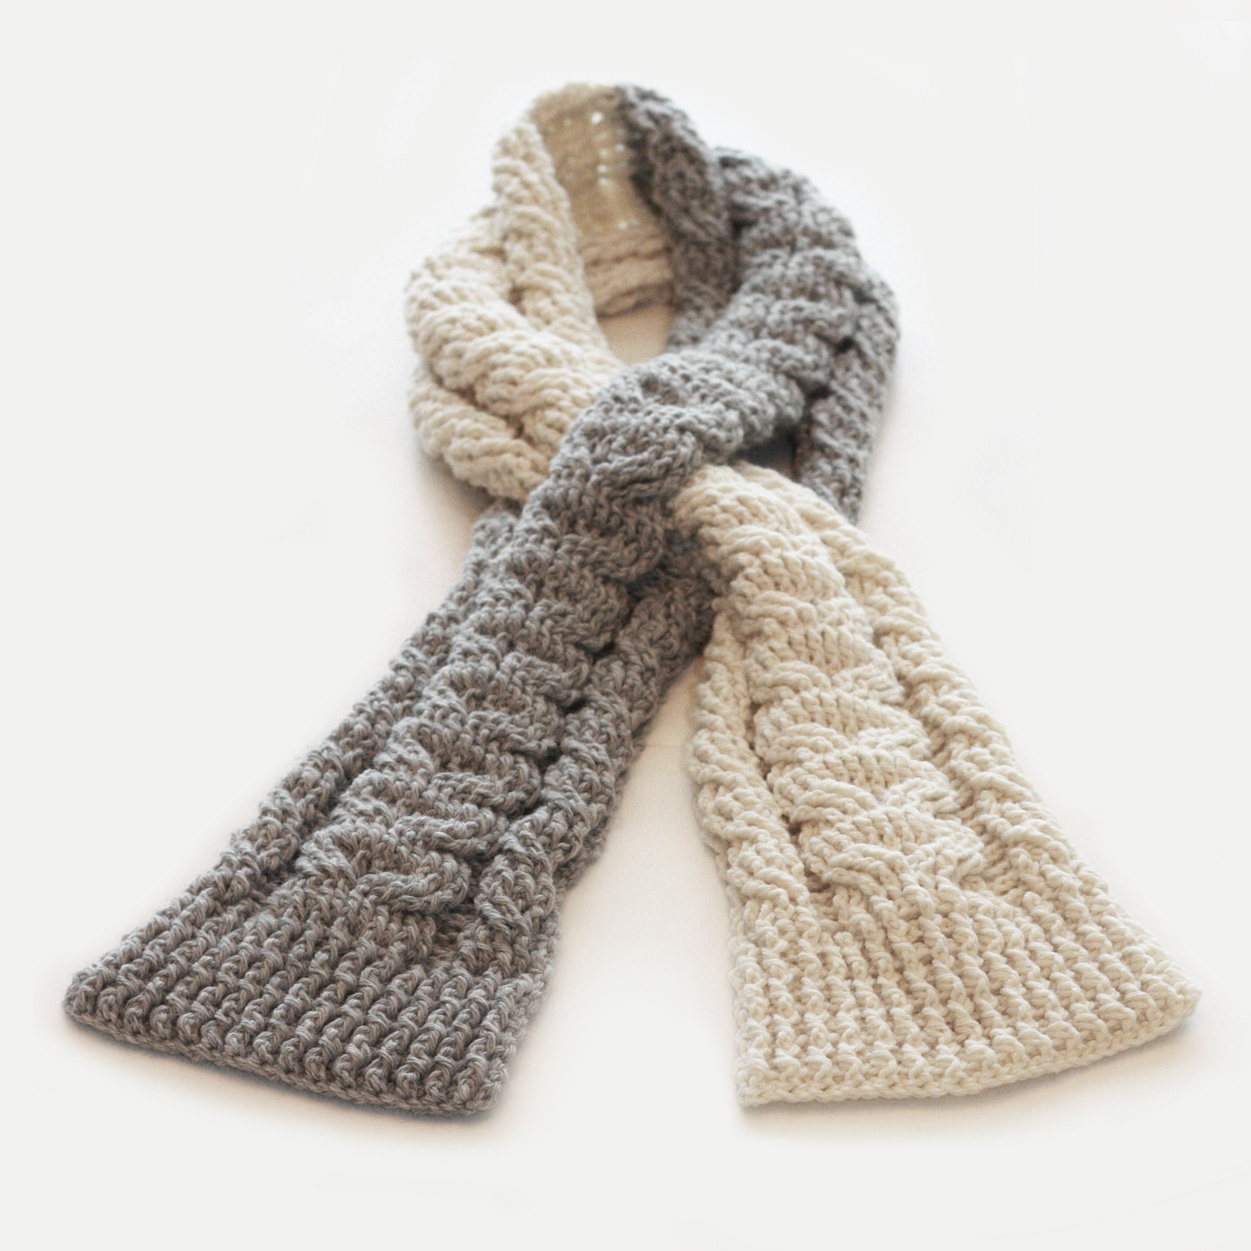 Crochet Pattern Keyhole Scarf : knot sew cute design shop: new crochet pattern - cabled ...